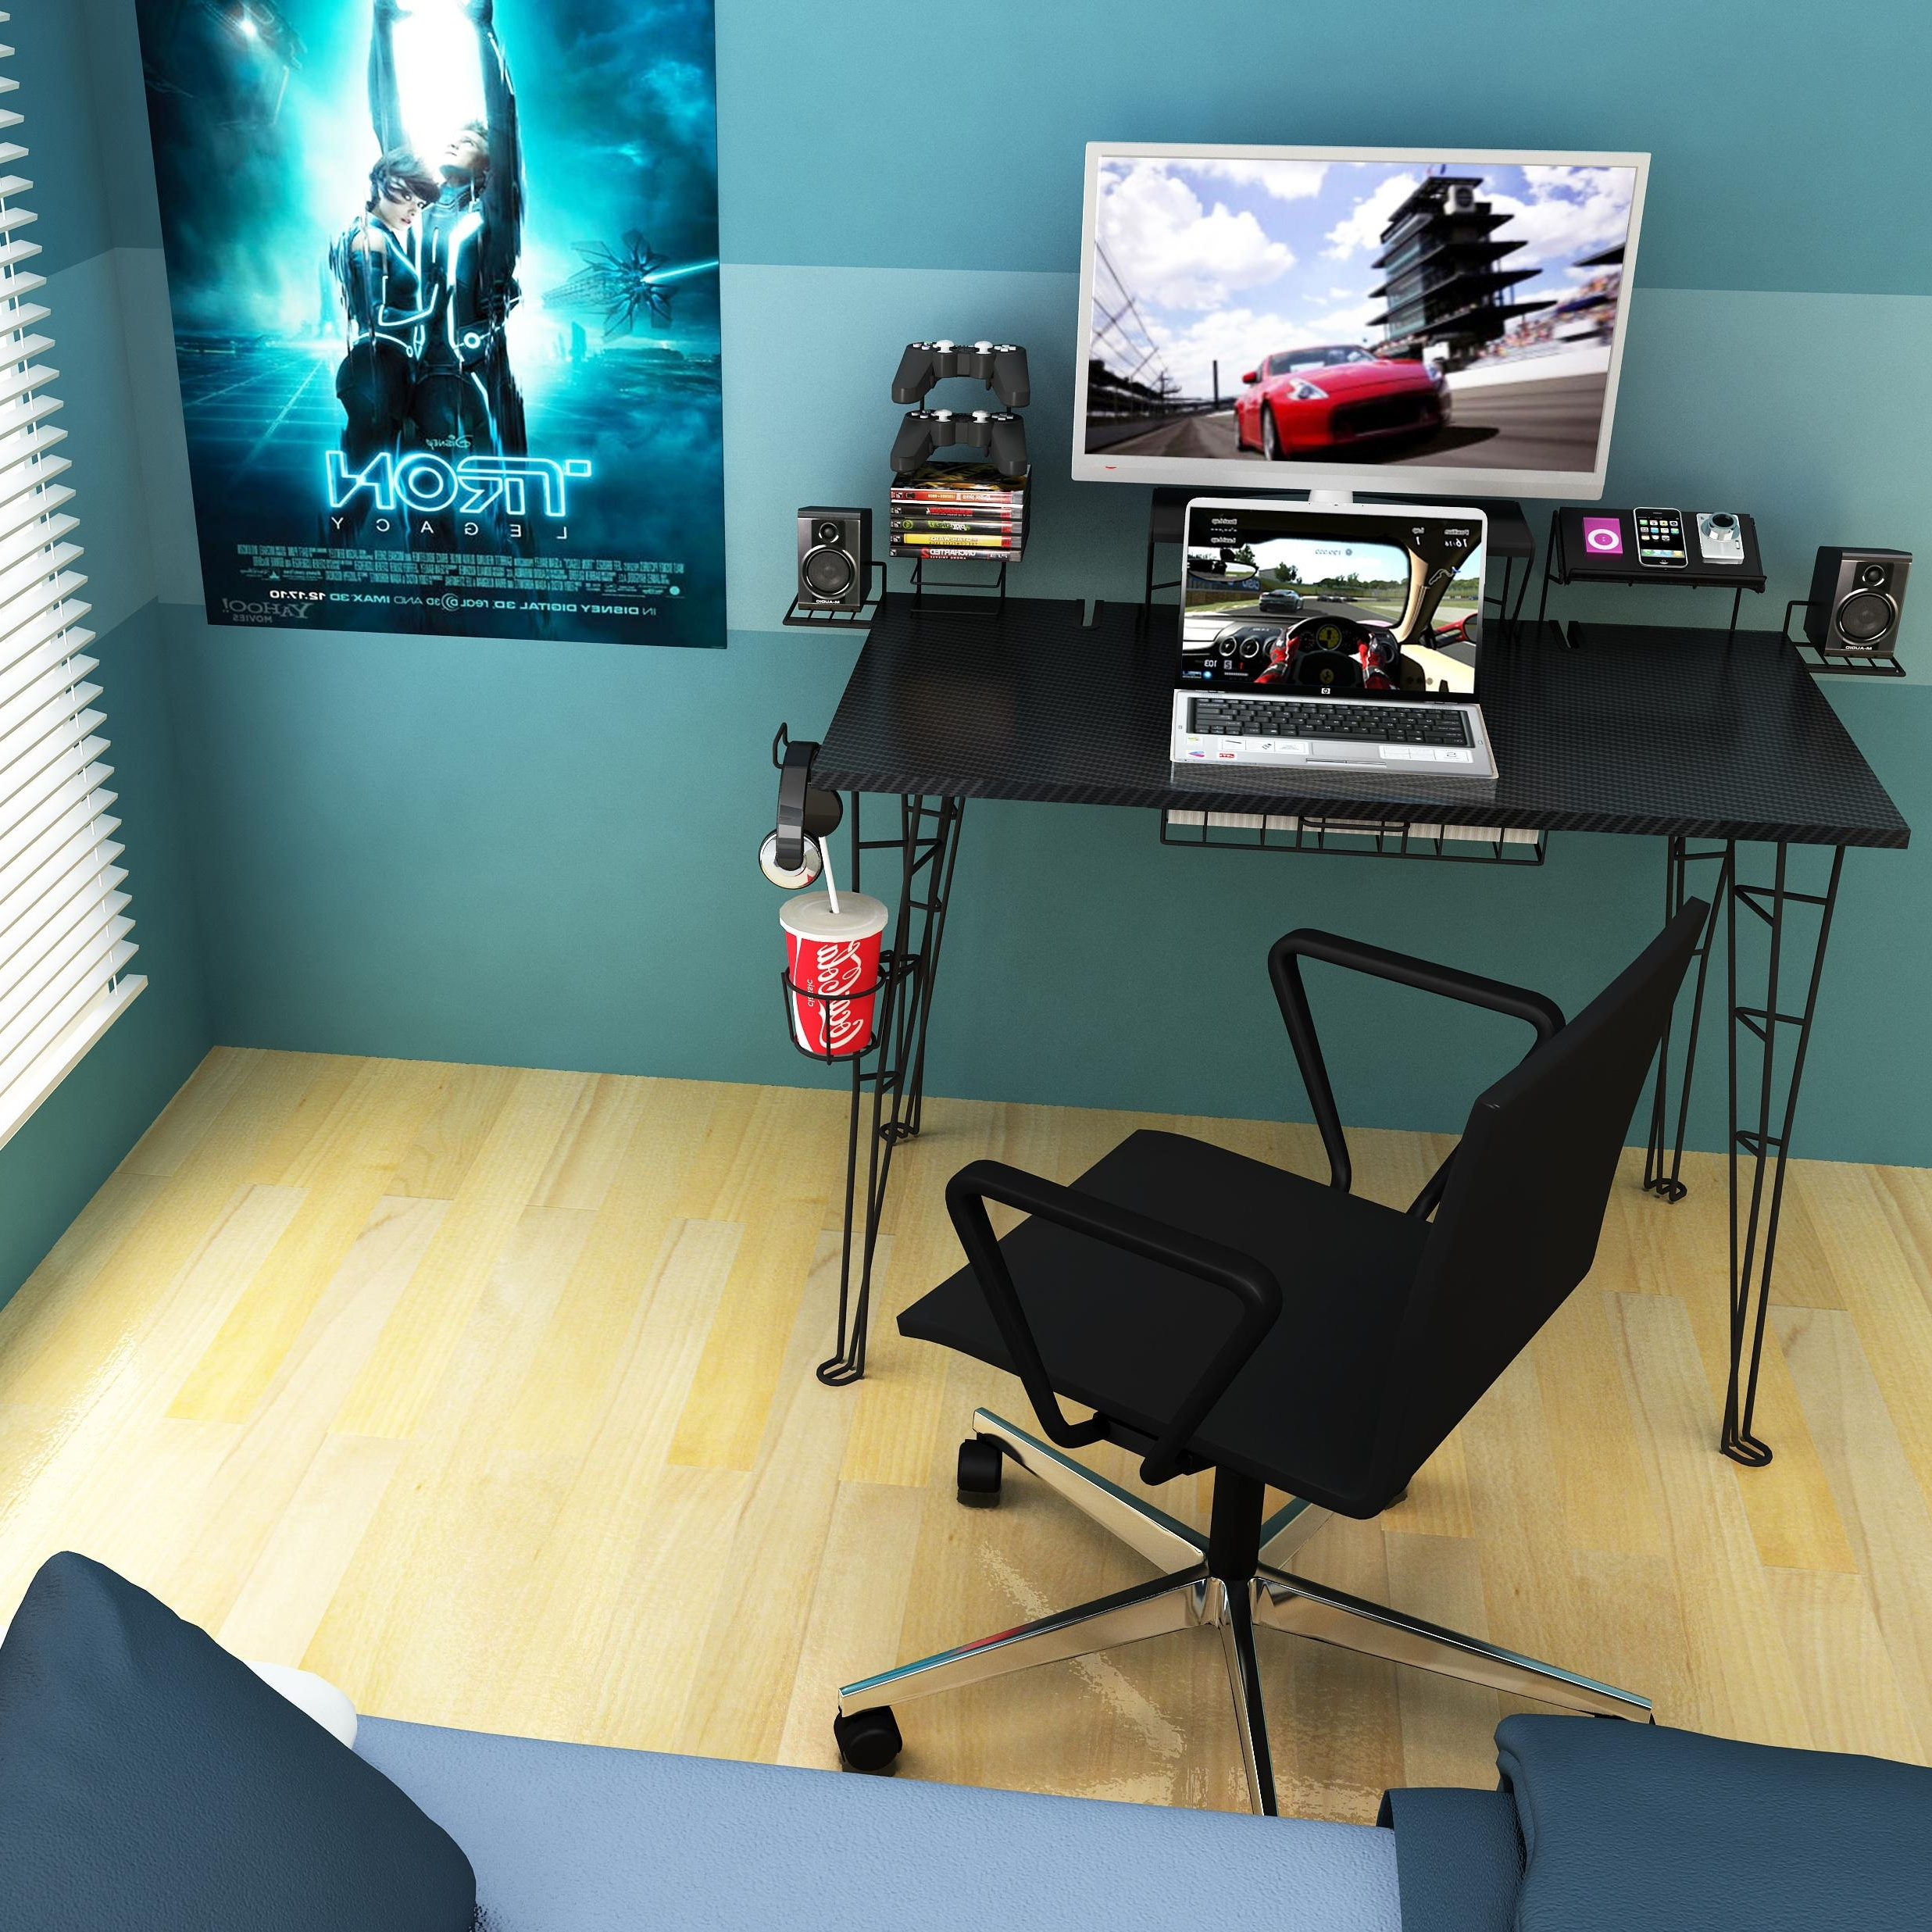 76 Most Bang Up Best Home Office Desk Cool Computer Desks Cheap Within Most Recent Computer Gaming Desks For Home (View 4 of 20)